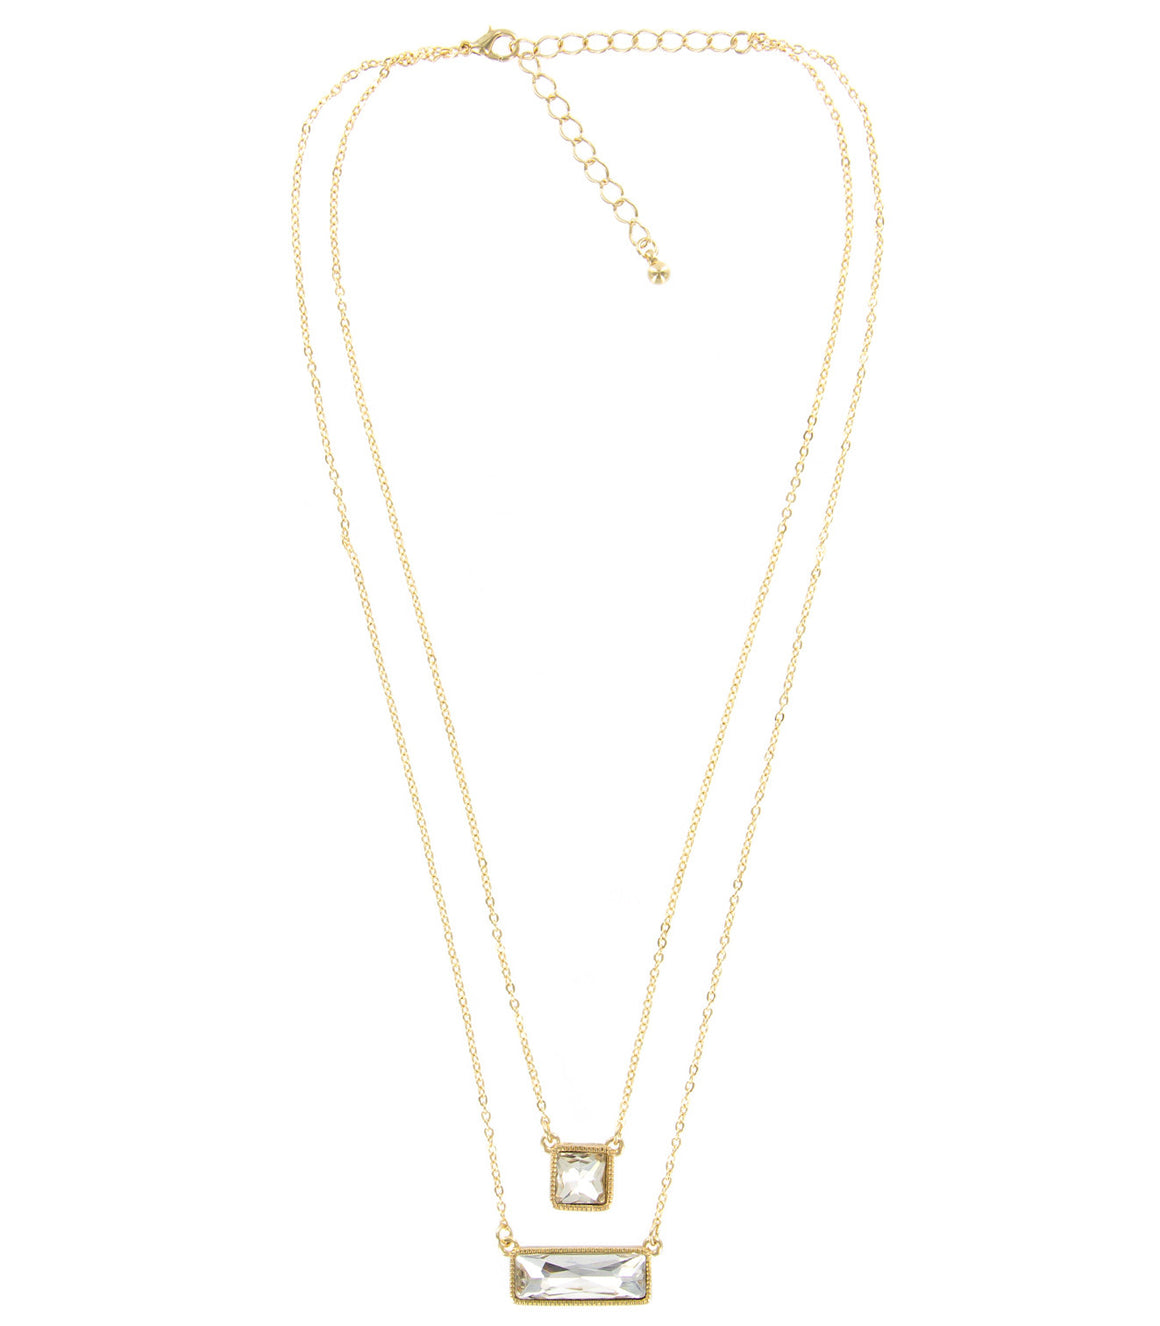 Baguette rhinestone two layer necklace.